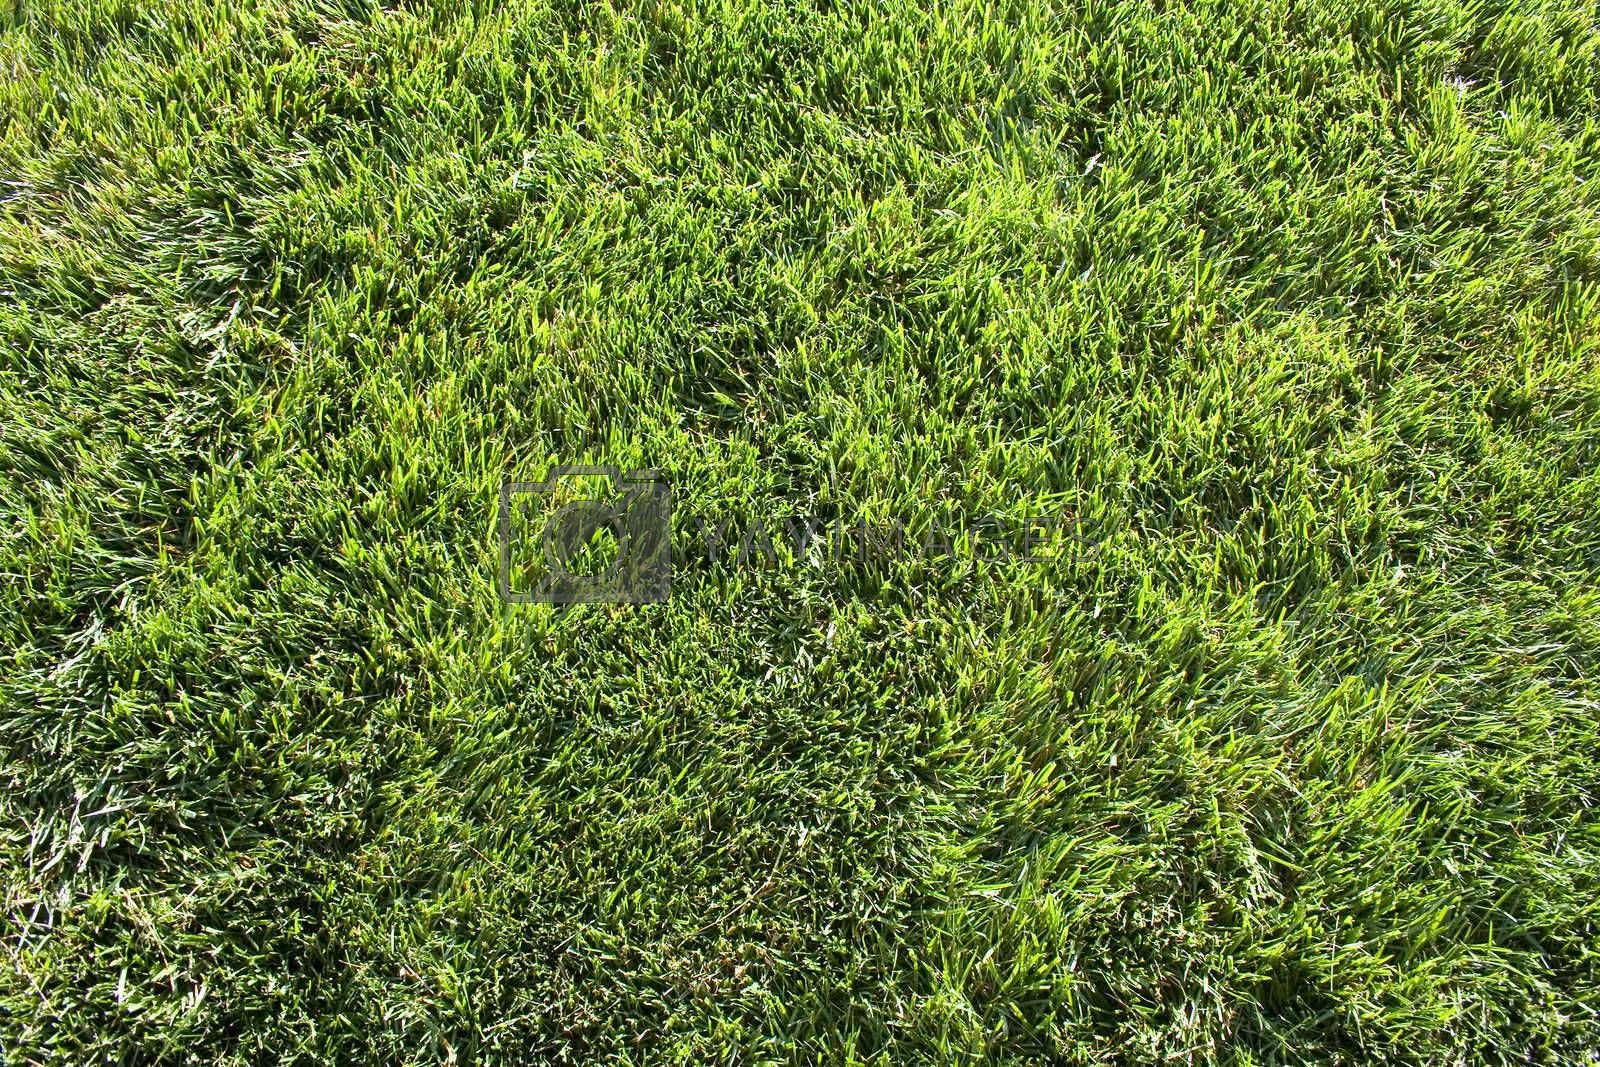 A top-down view of a field of grass.